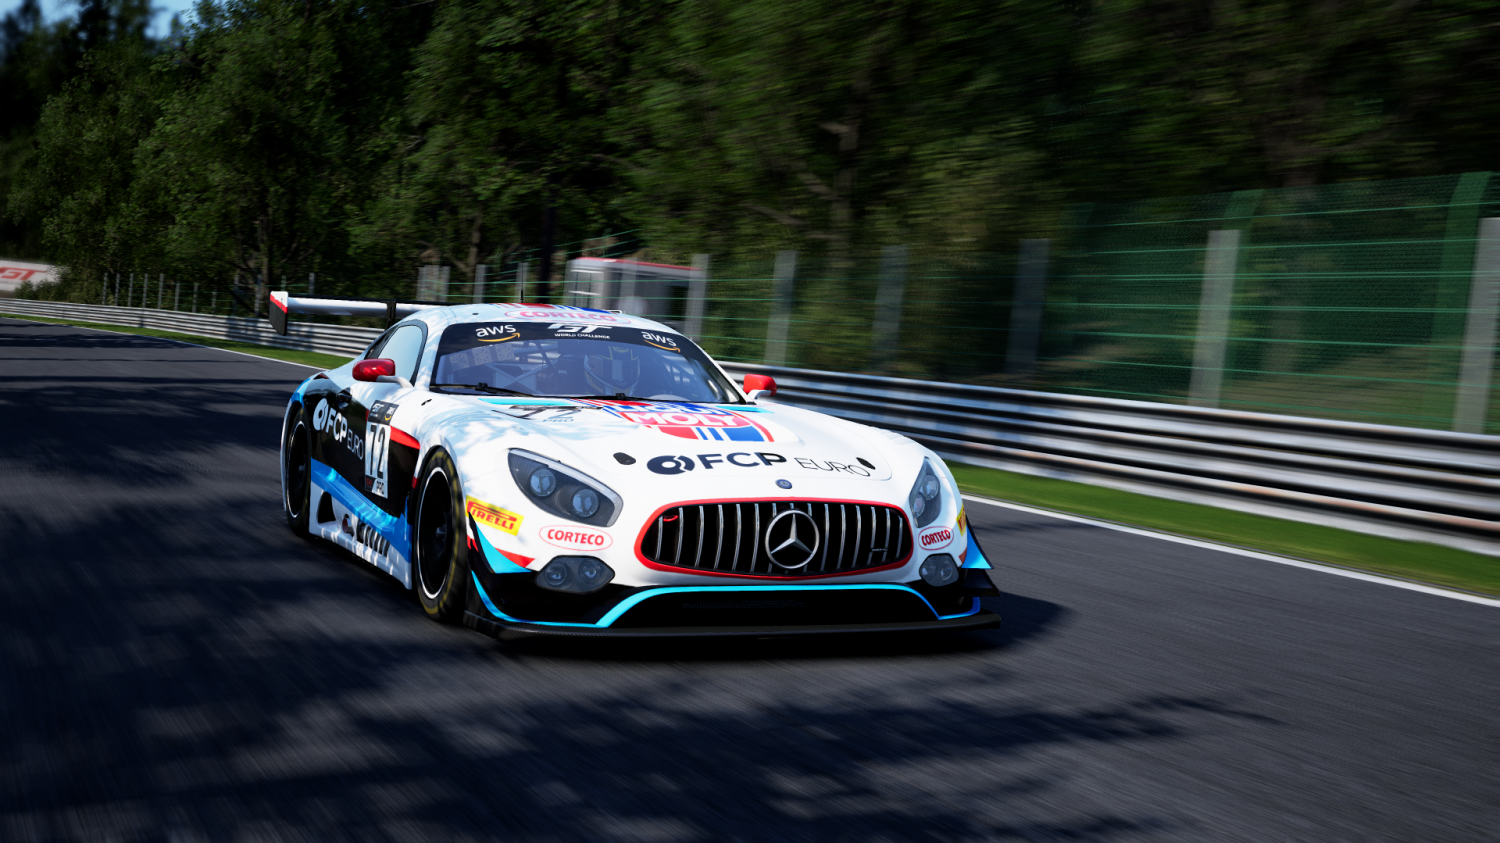 Nürburgring Hosts Season Opener of FCP Euro GT World Challenge America Esports Championship